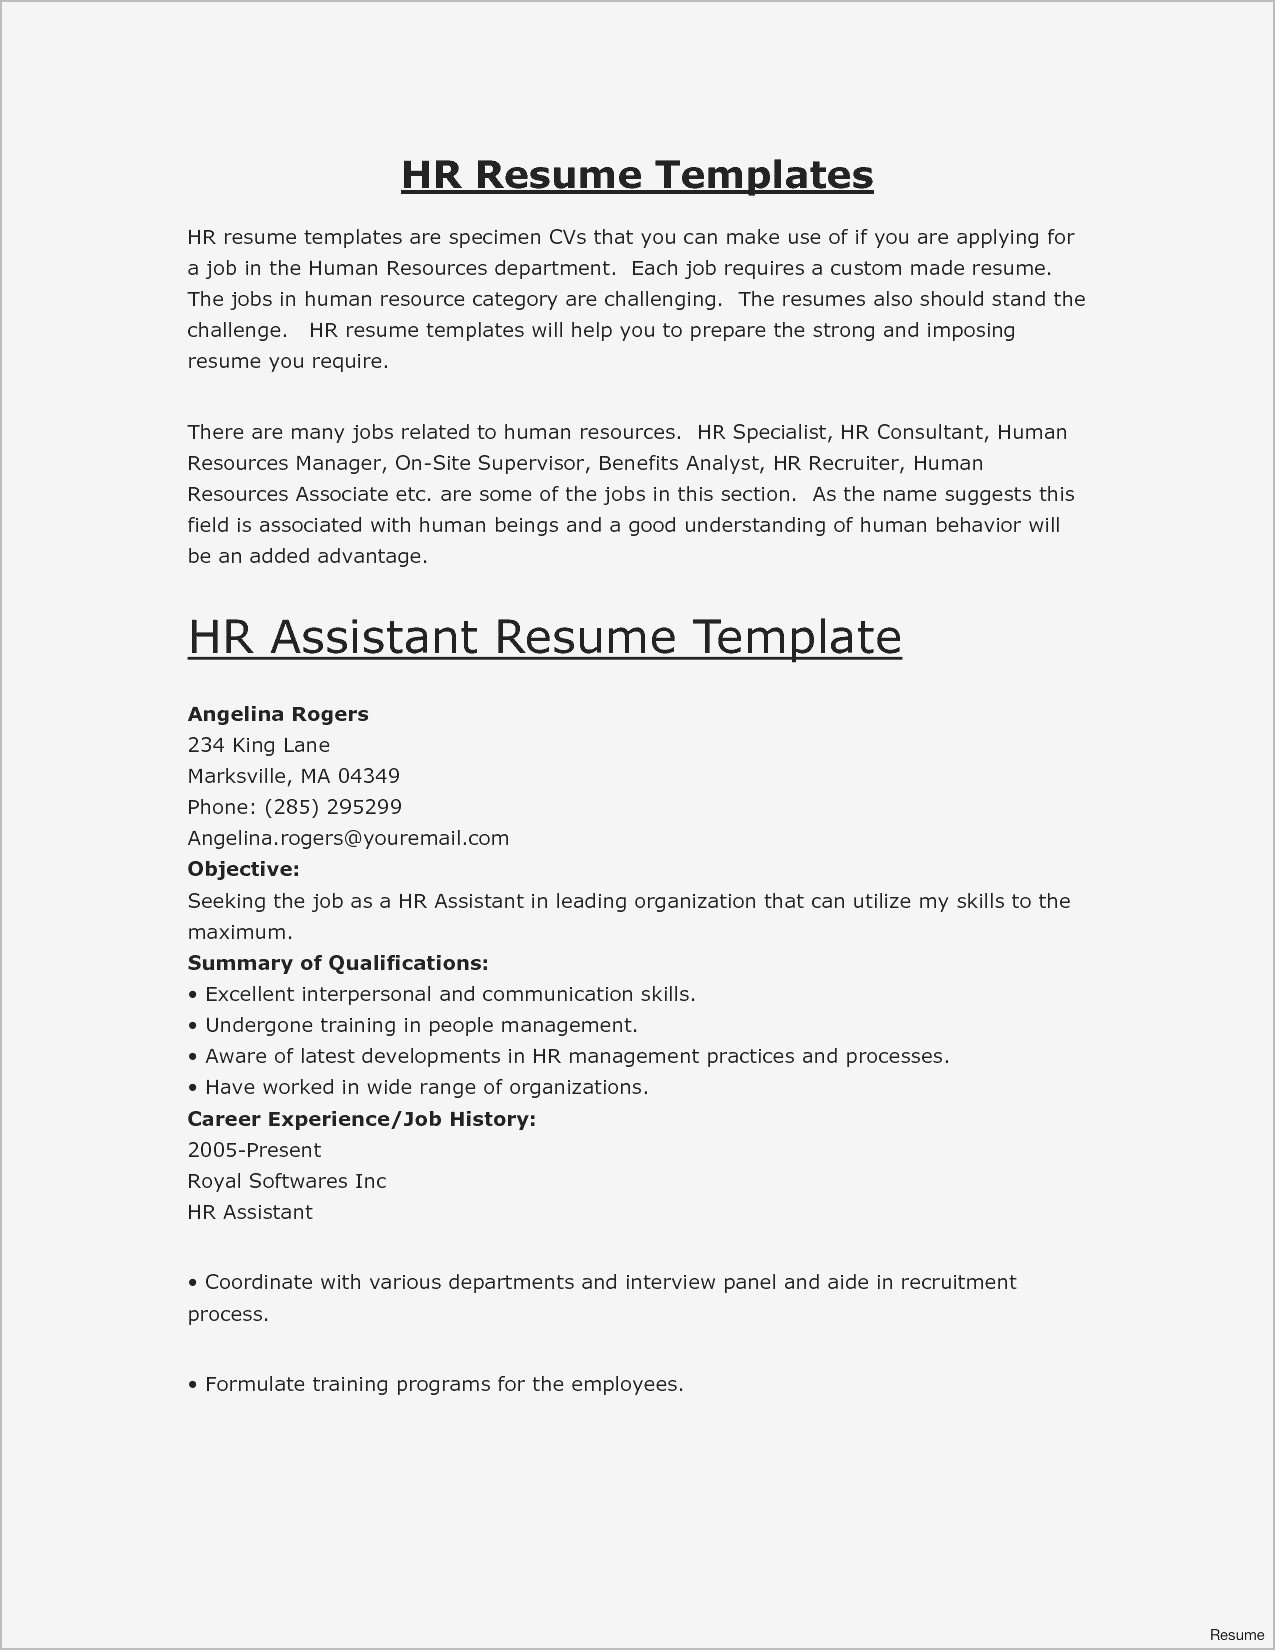 12 resume posting sites collection